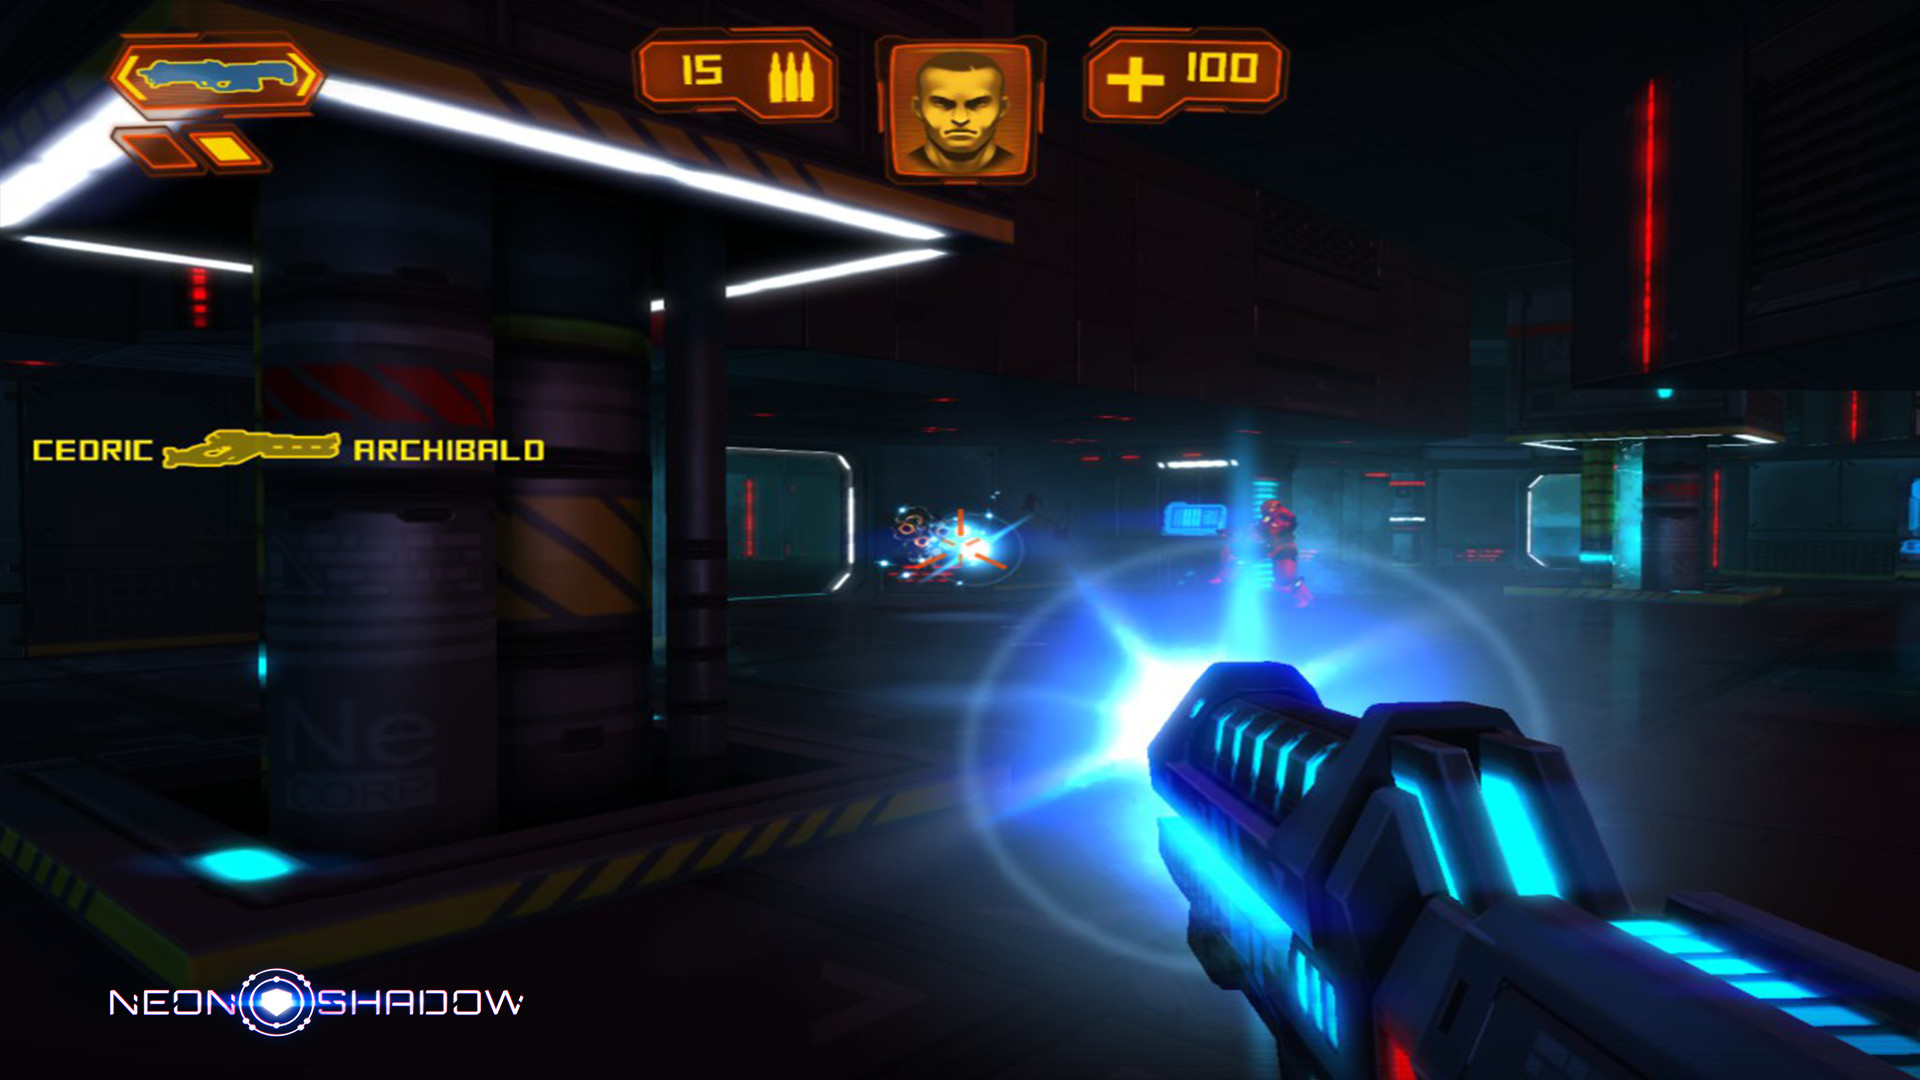 Neon Shadow screenshot